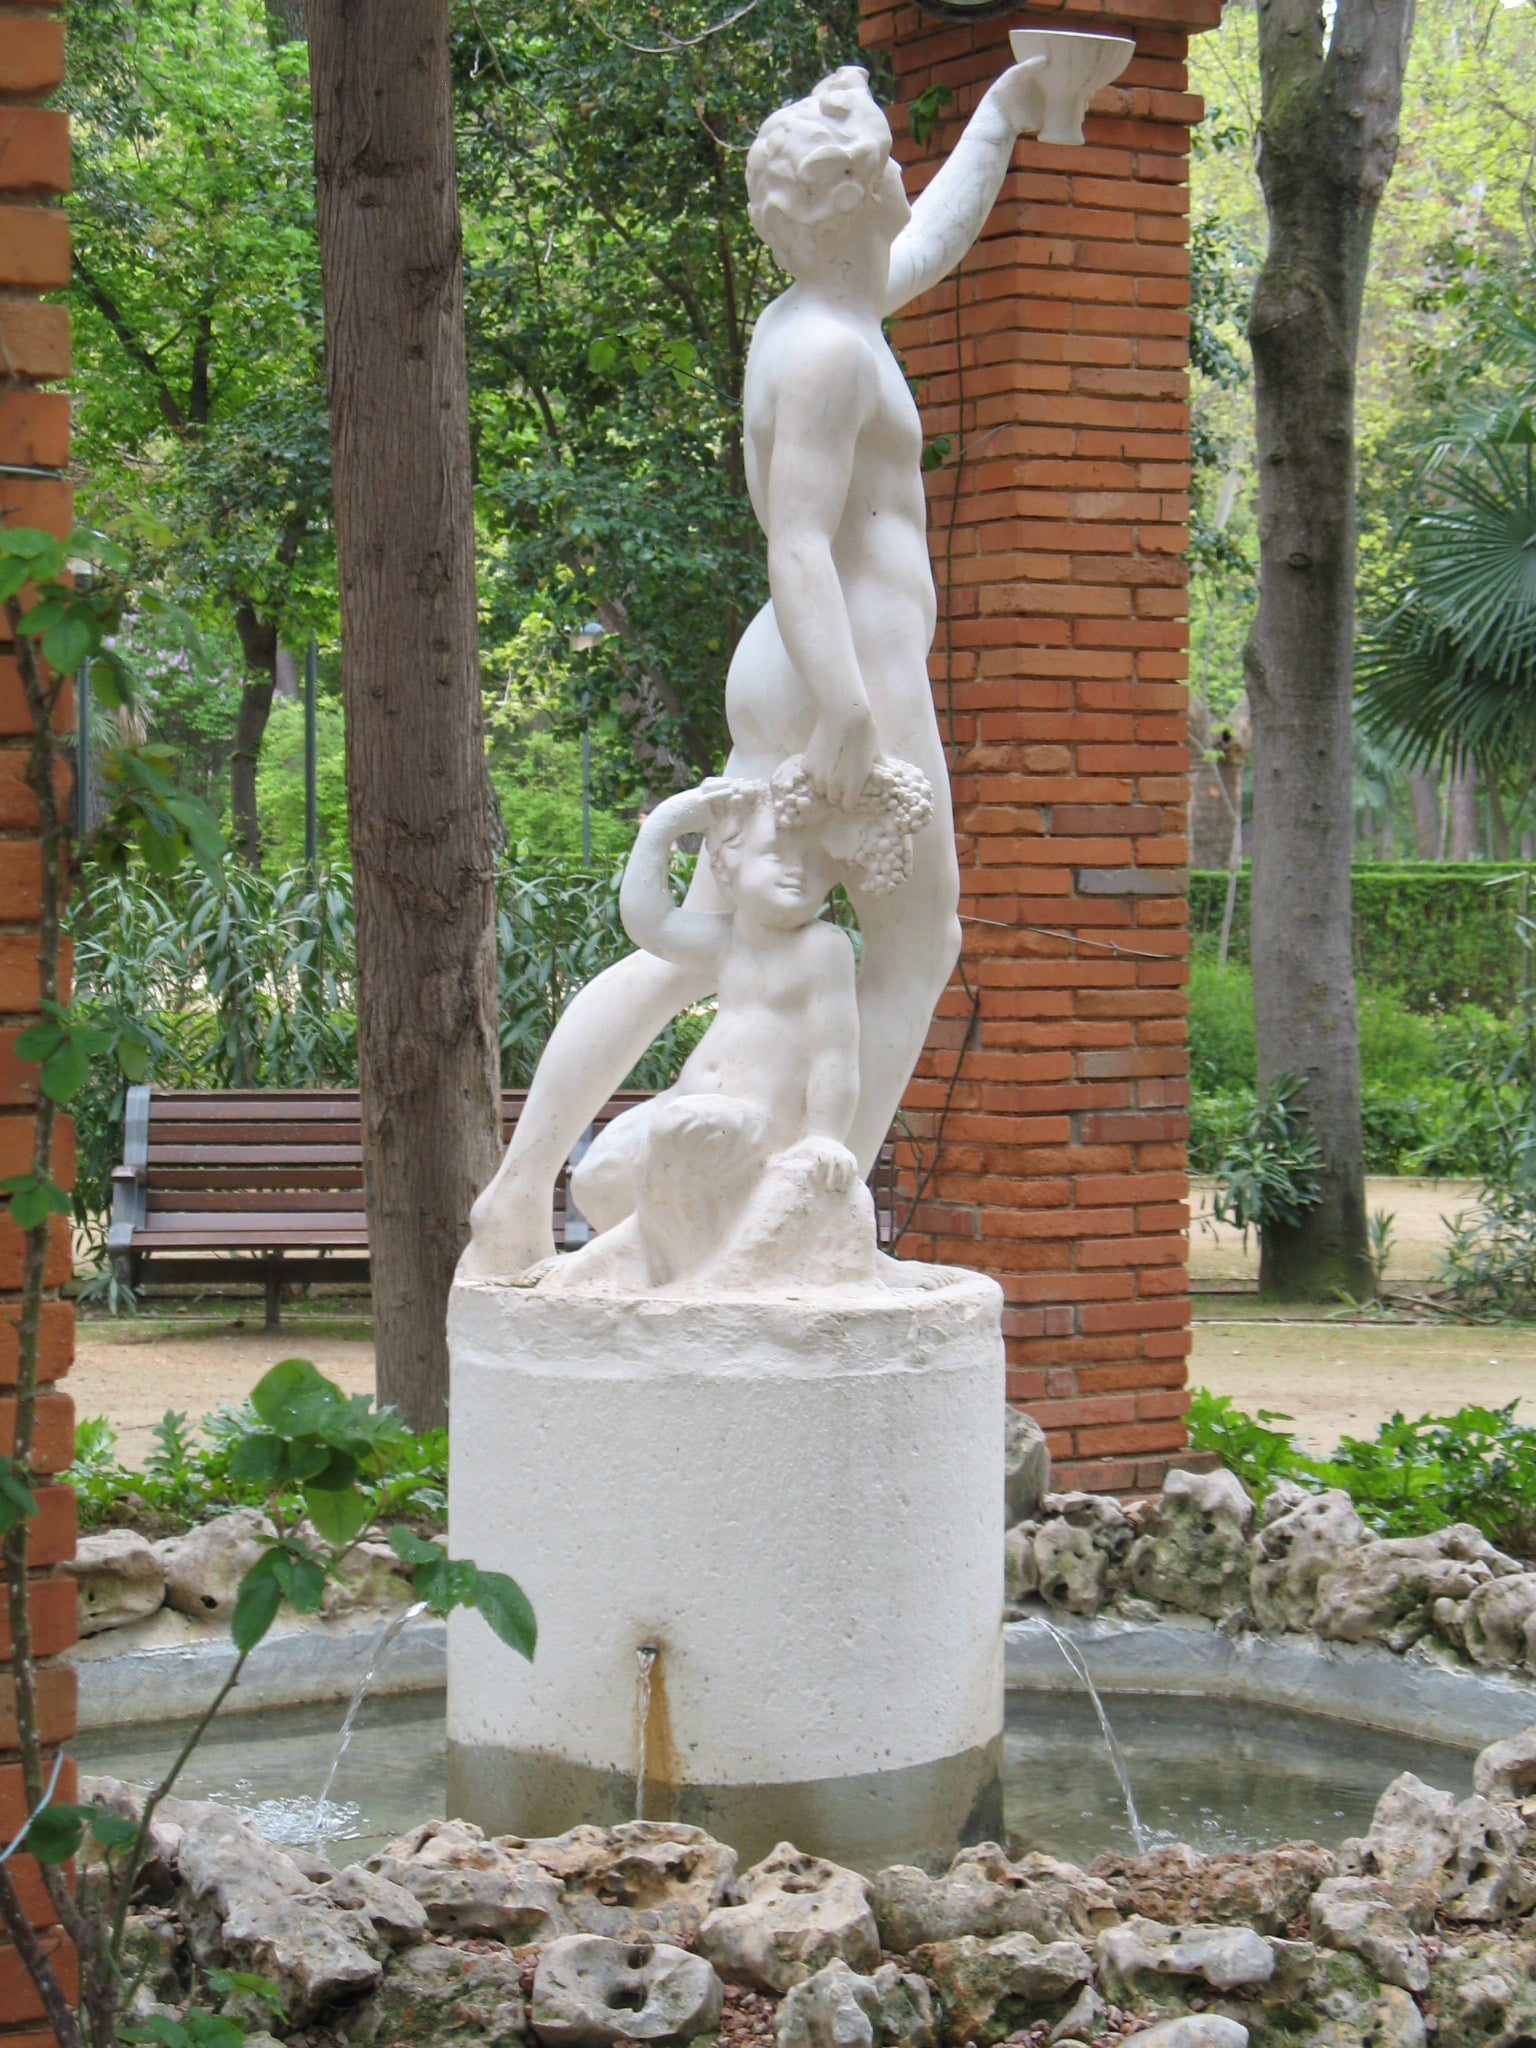 Fountain of the Nude